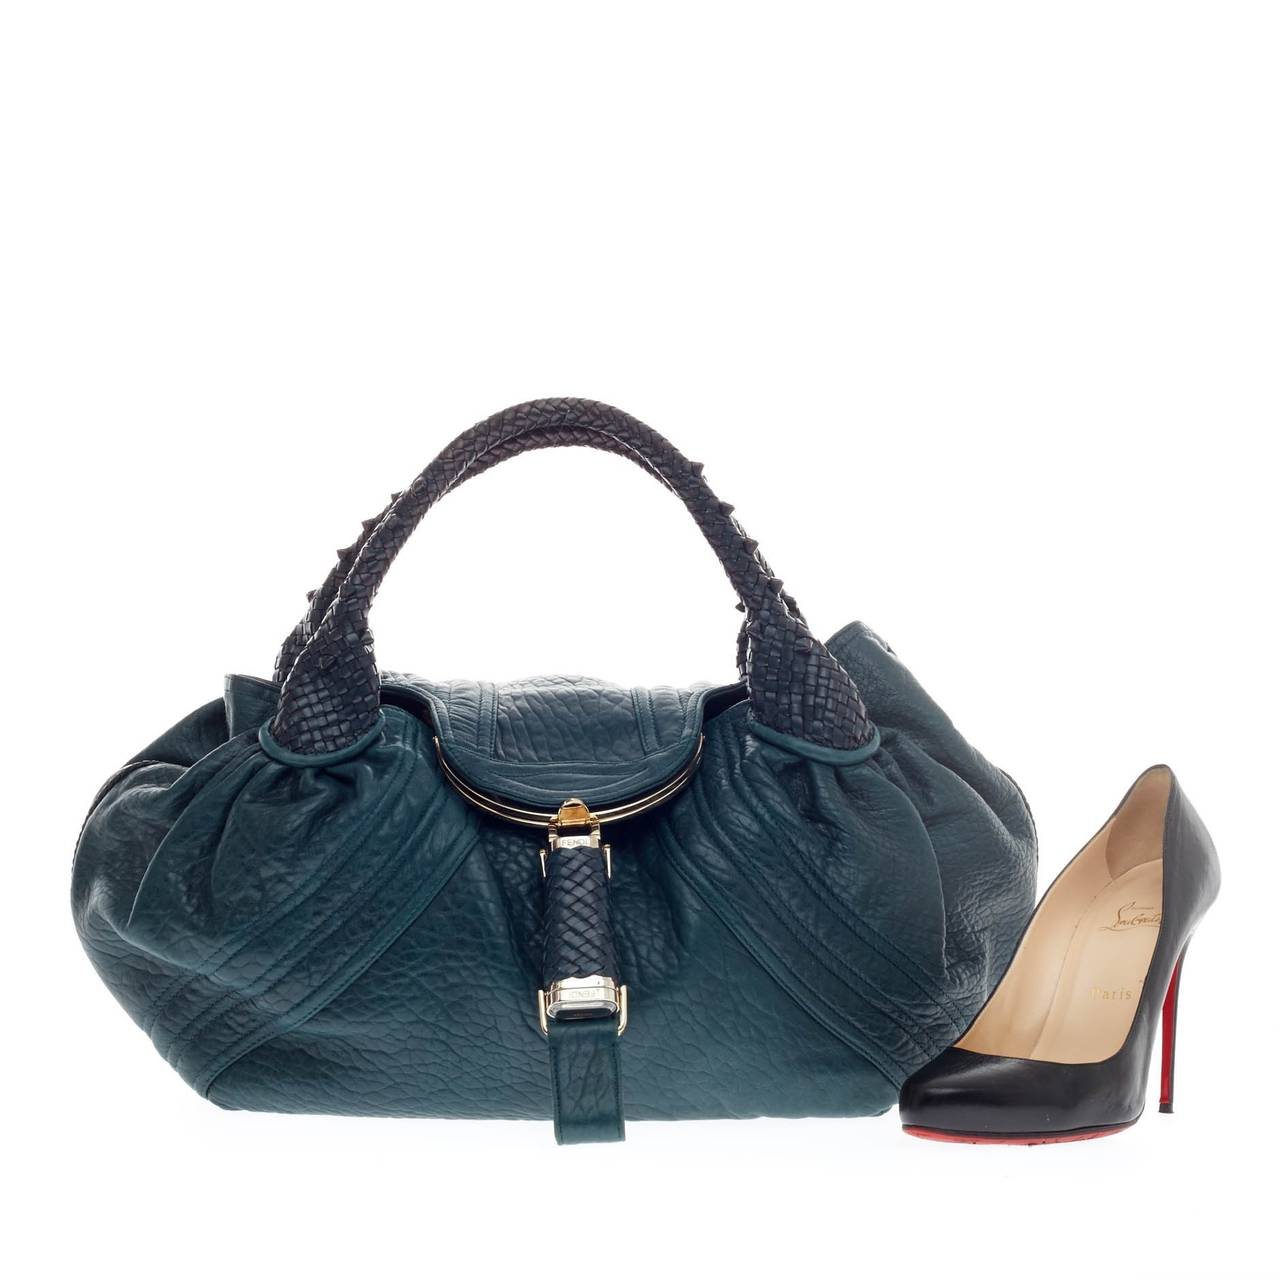 cd1557f8553 This authentic Fendi Spy Bag Leather showcases one of the brand s most  popular designs. Constructed